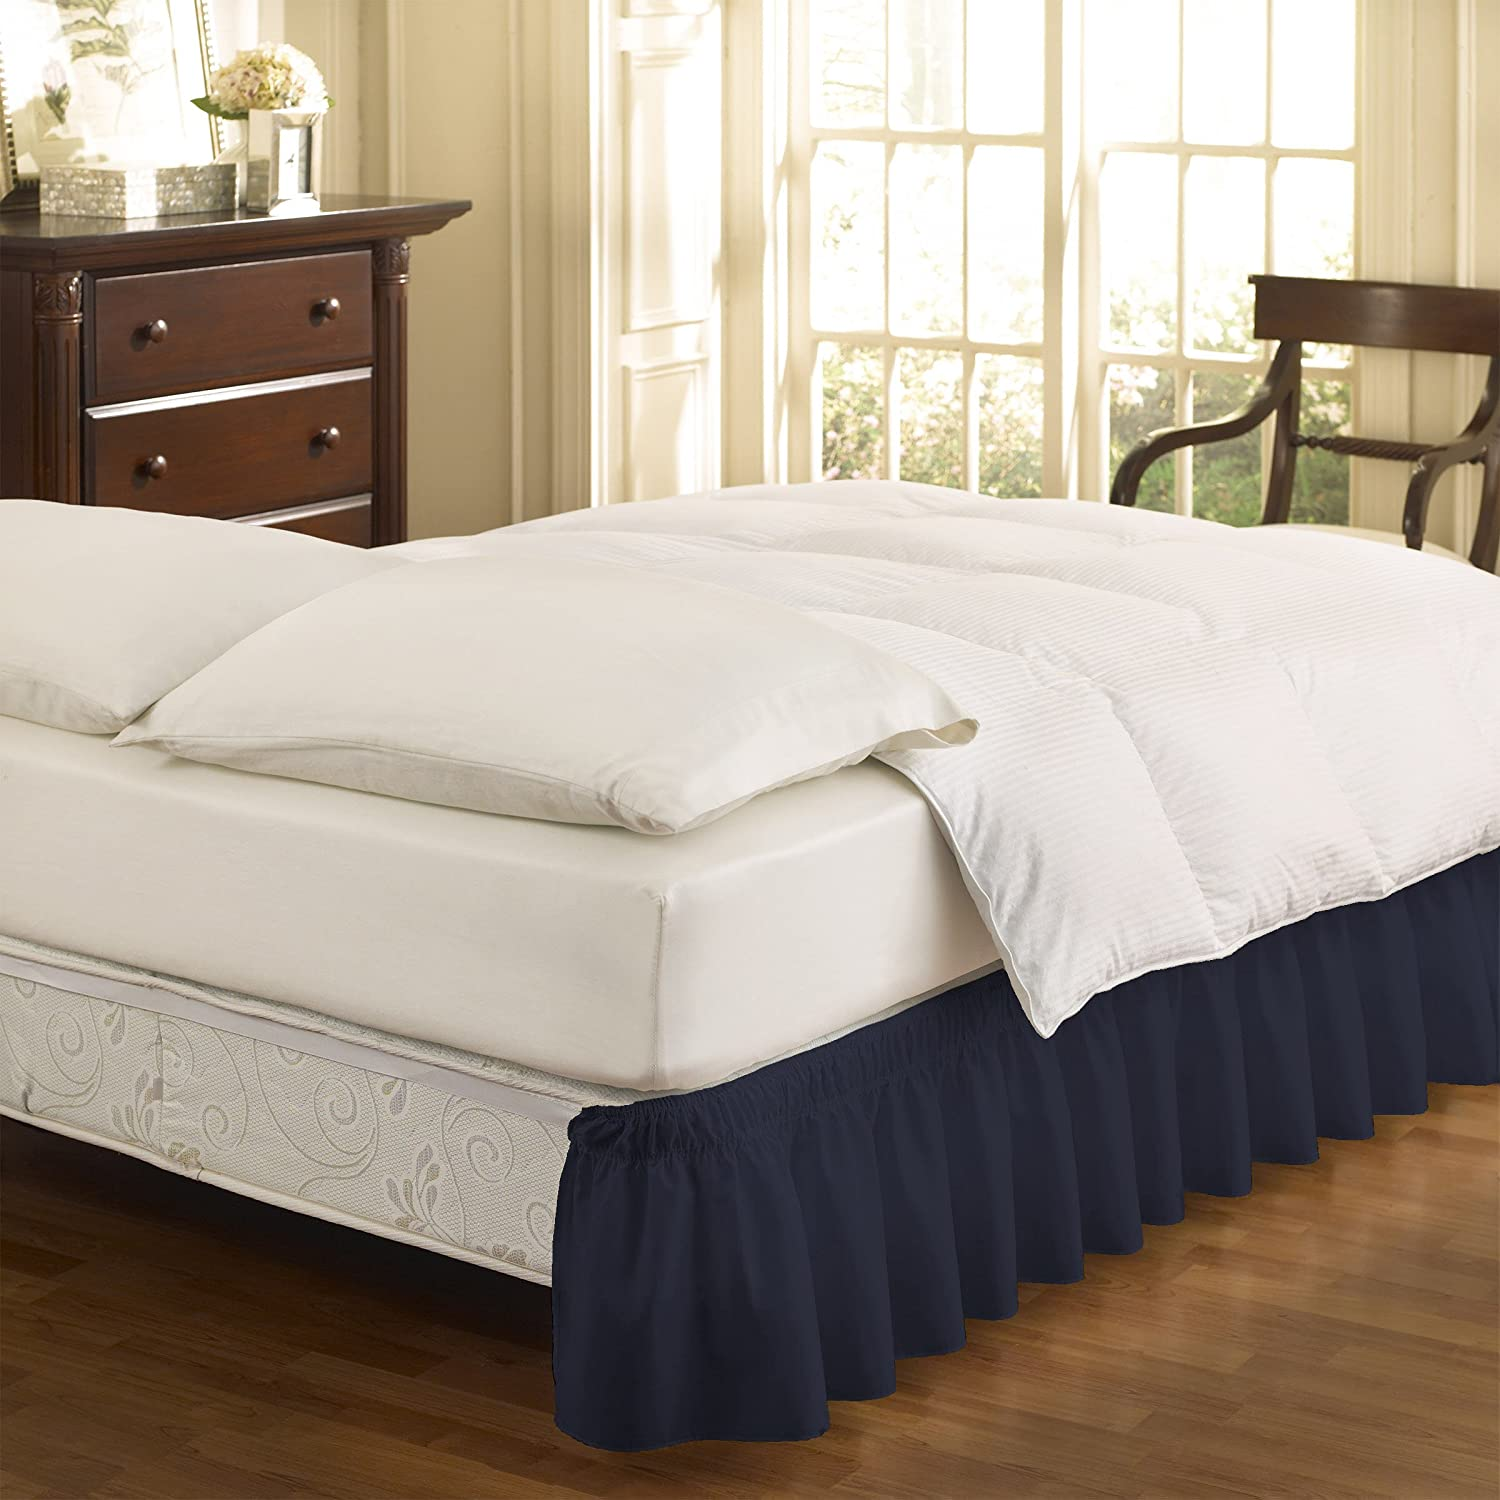 EasyFit 11578BEDDQKGNVY Wrap Around Eyelet Ruffled Queen//King Bed Skirt 80-Inch by 60-Inch with 15-Inch drop Navy Ellery Homestyles